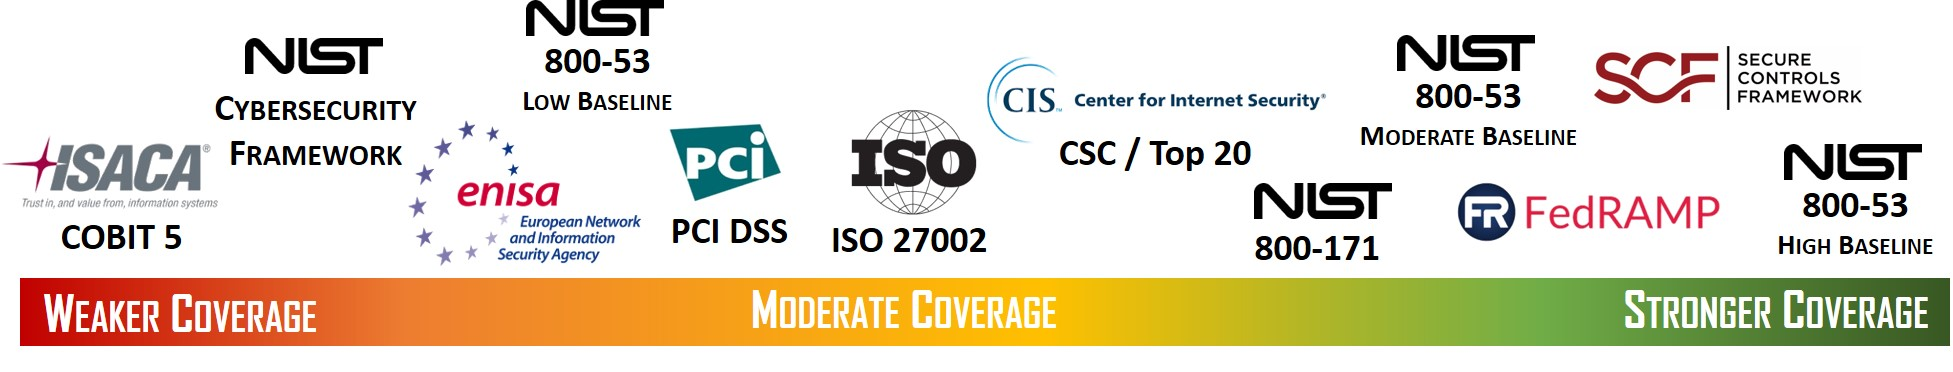 Written Information Security Policies & Standards for NIST 800-53